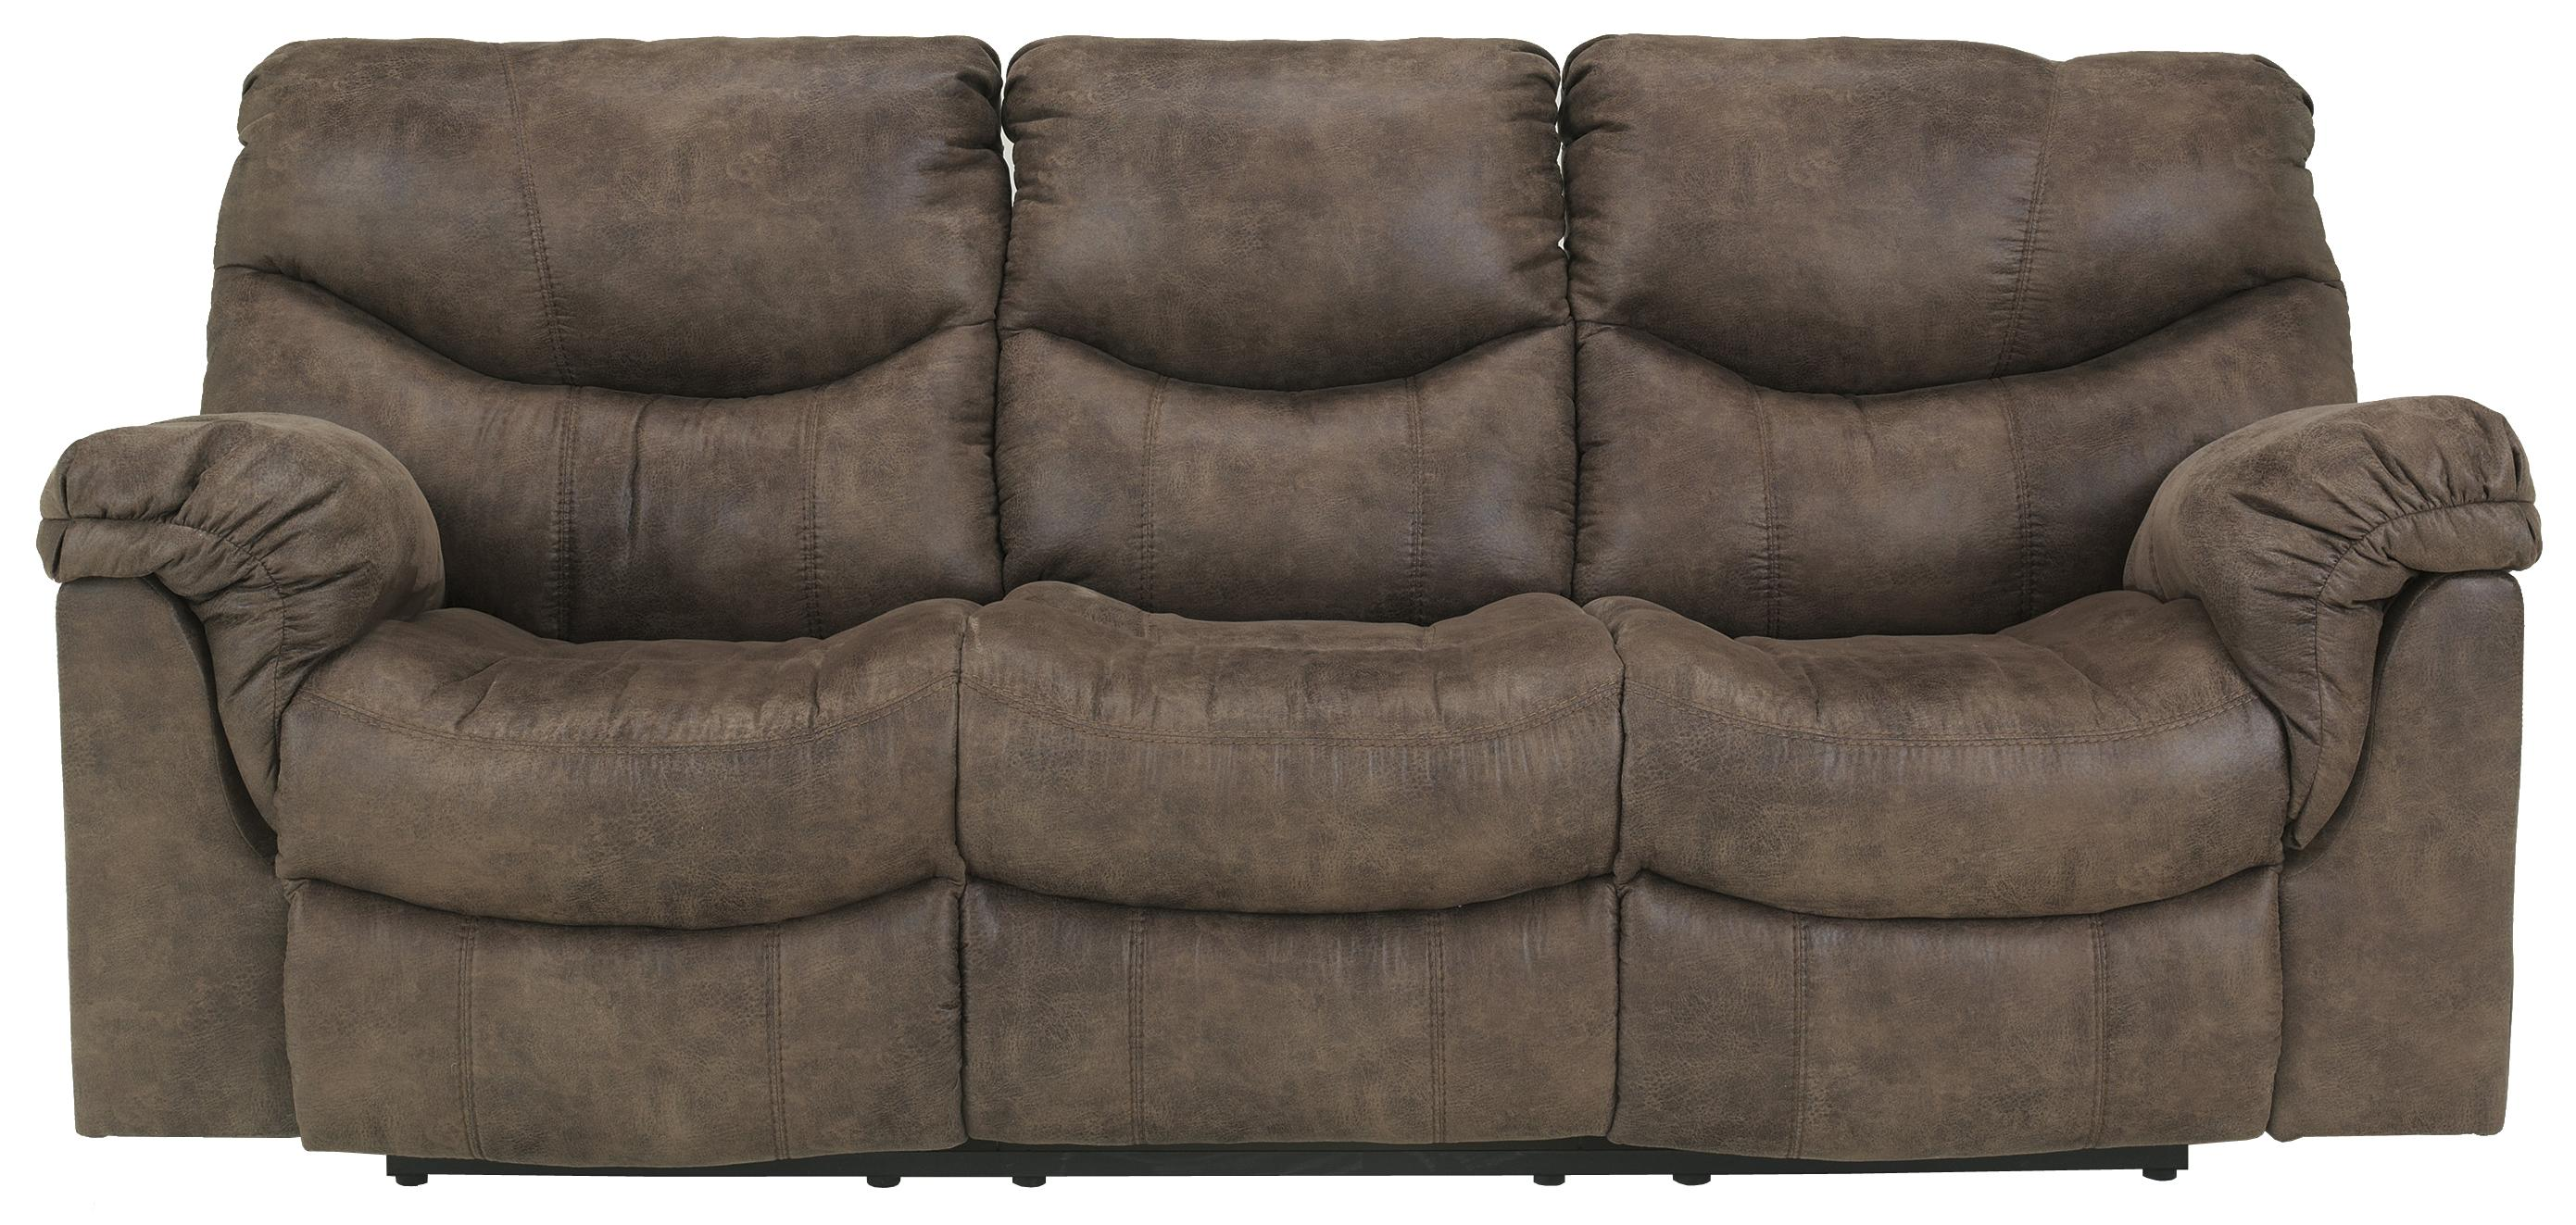 Signature Design by Ashley Alzena - Gunsmoke Reclining Sofa - Item Number: 7140088